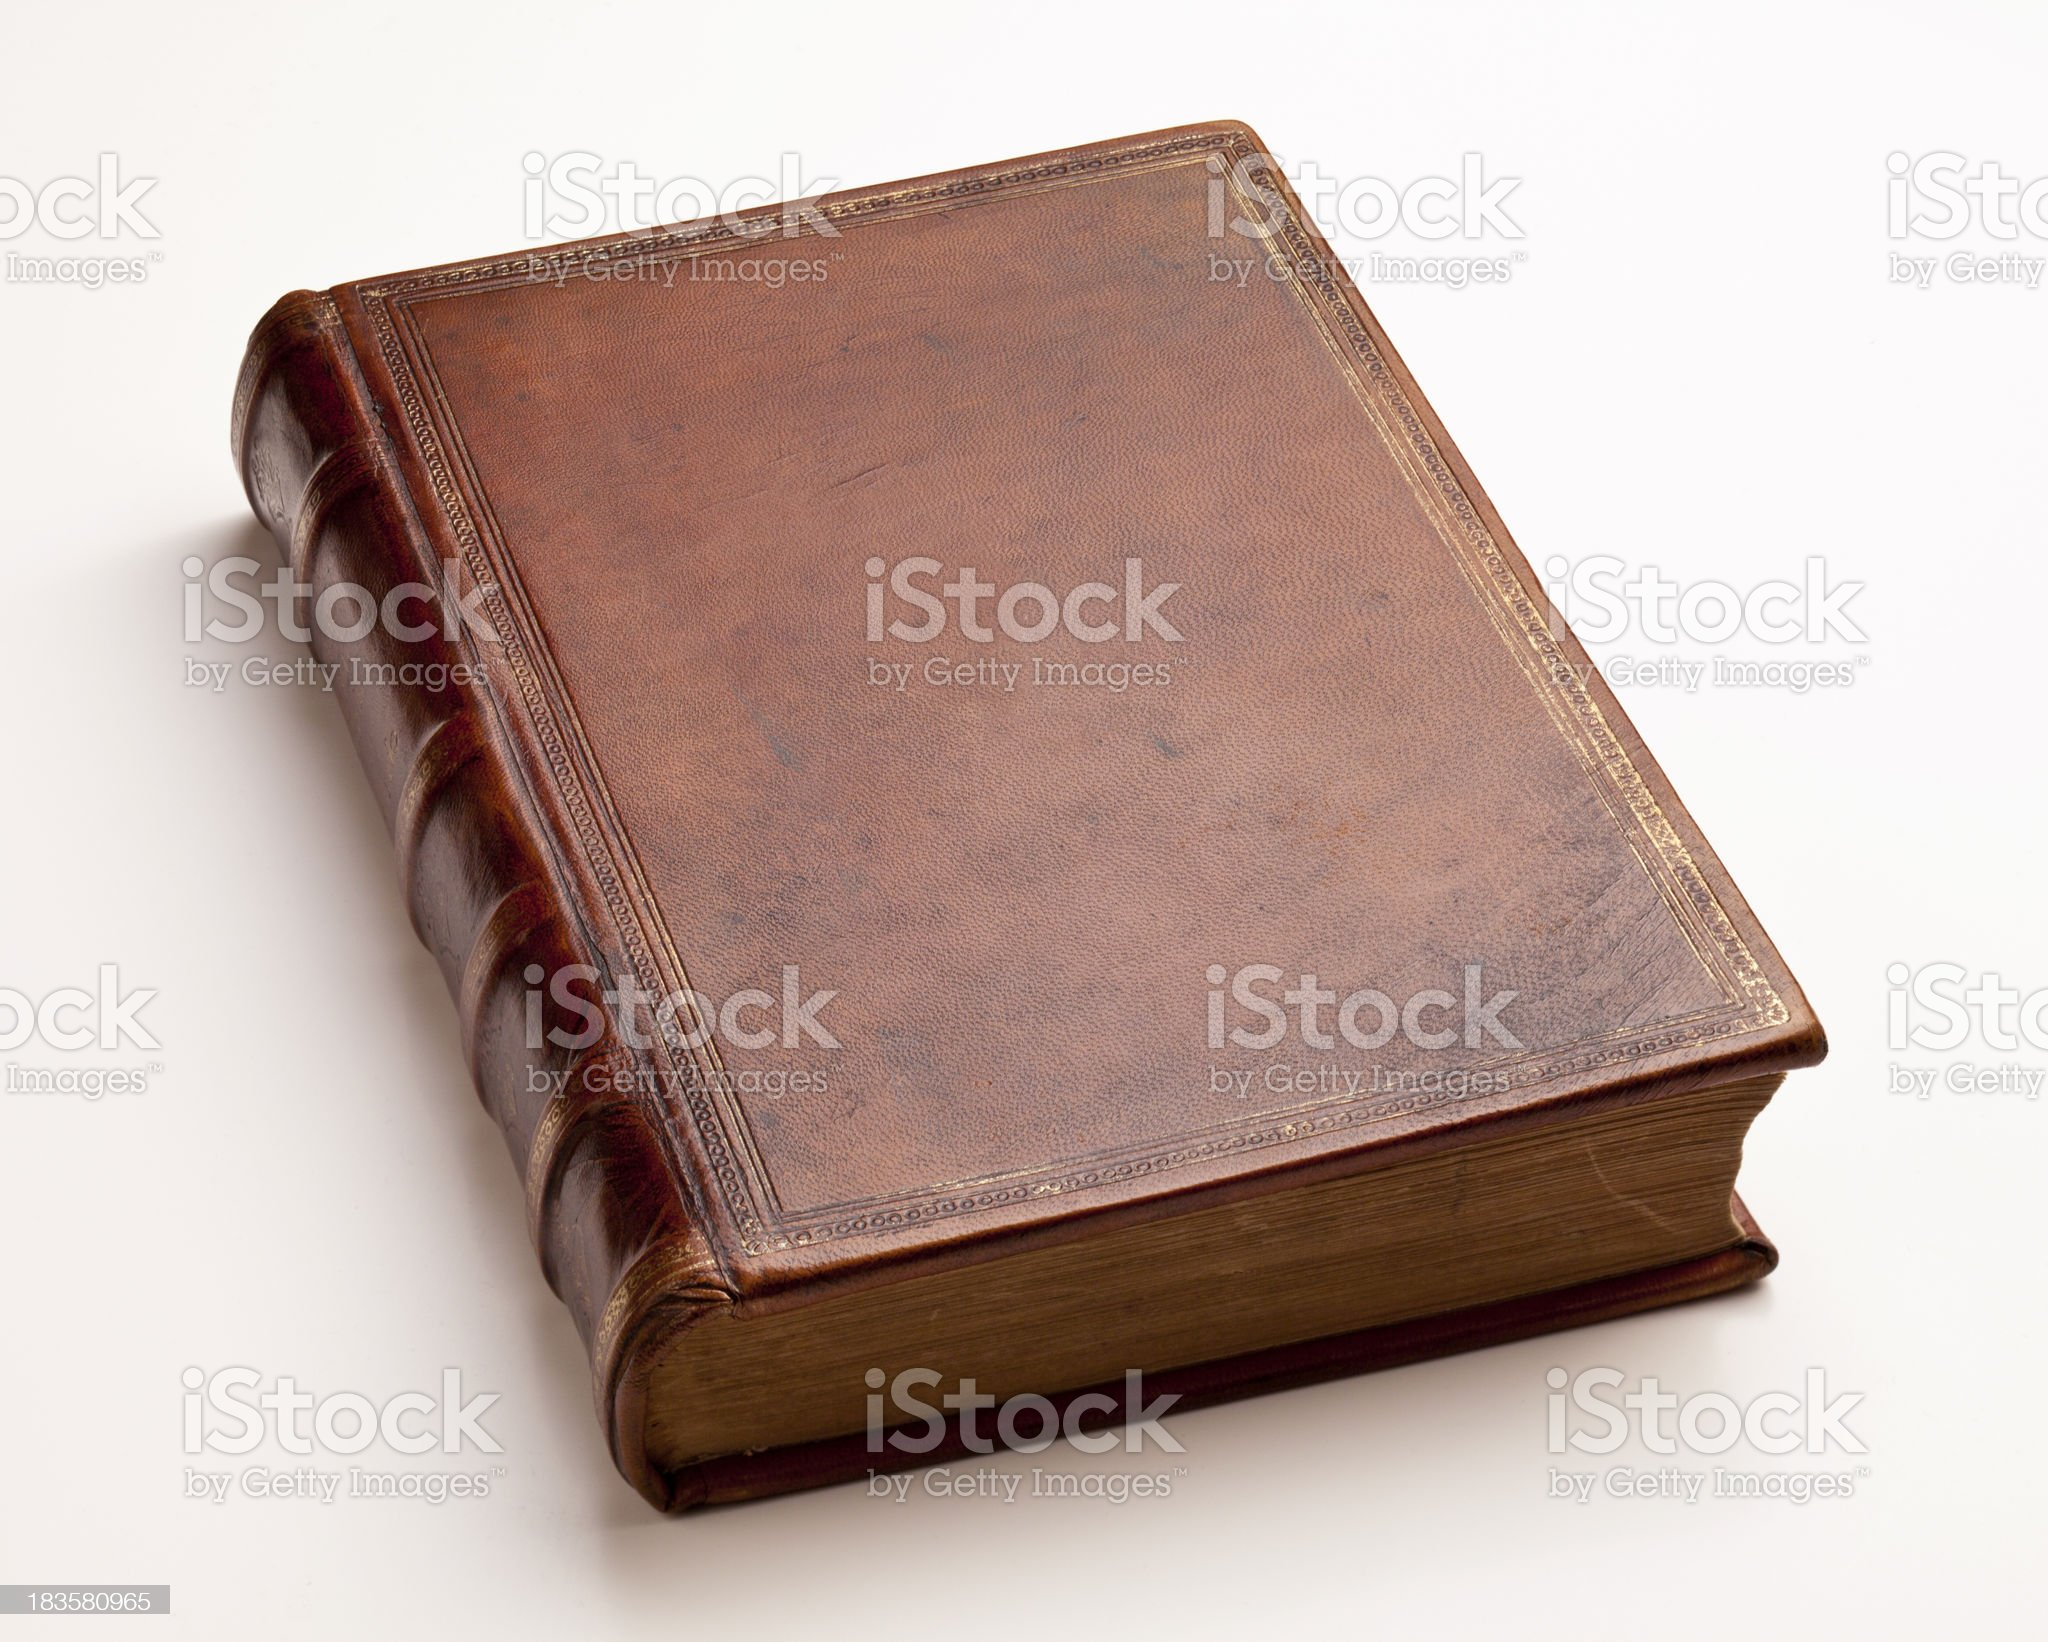 Antique Leather Book royalty-free stock photo